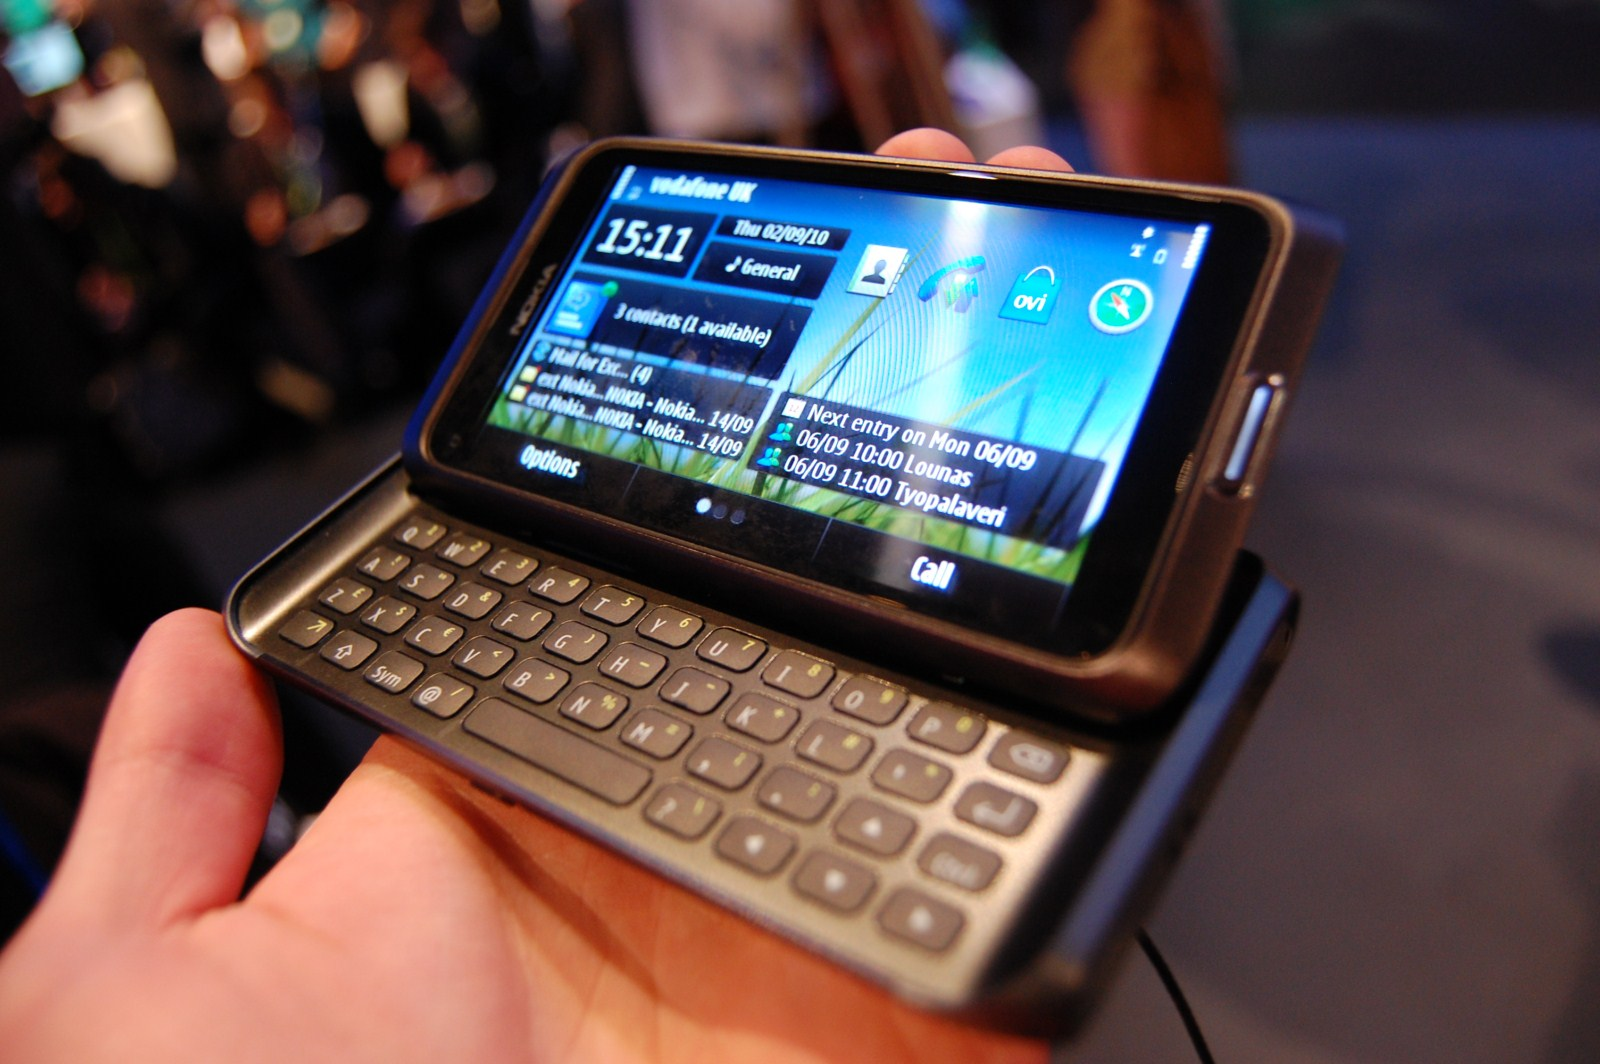 nokia-e7-communicator-02